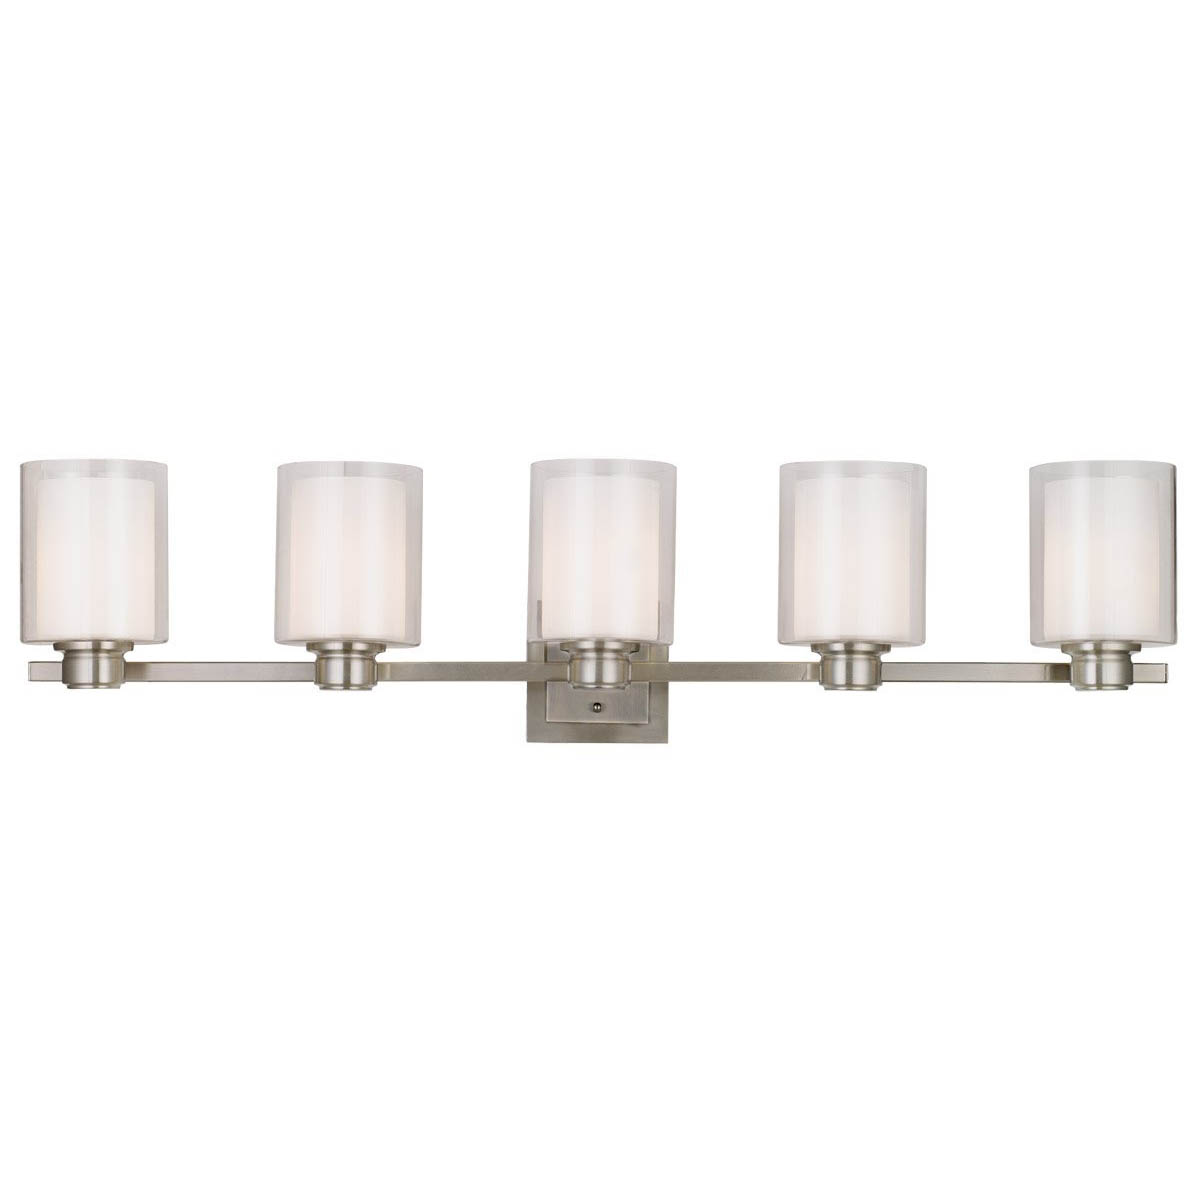 Design House Oslo Light Indoor Wall Mount in Satin Nickel - 556175